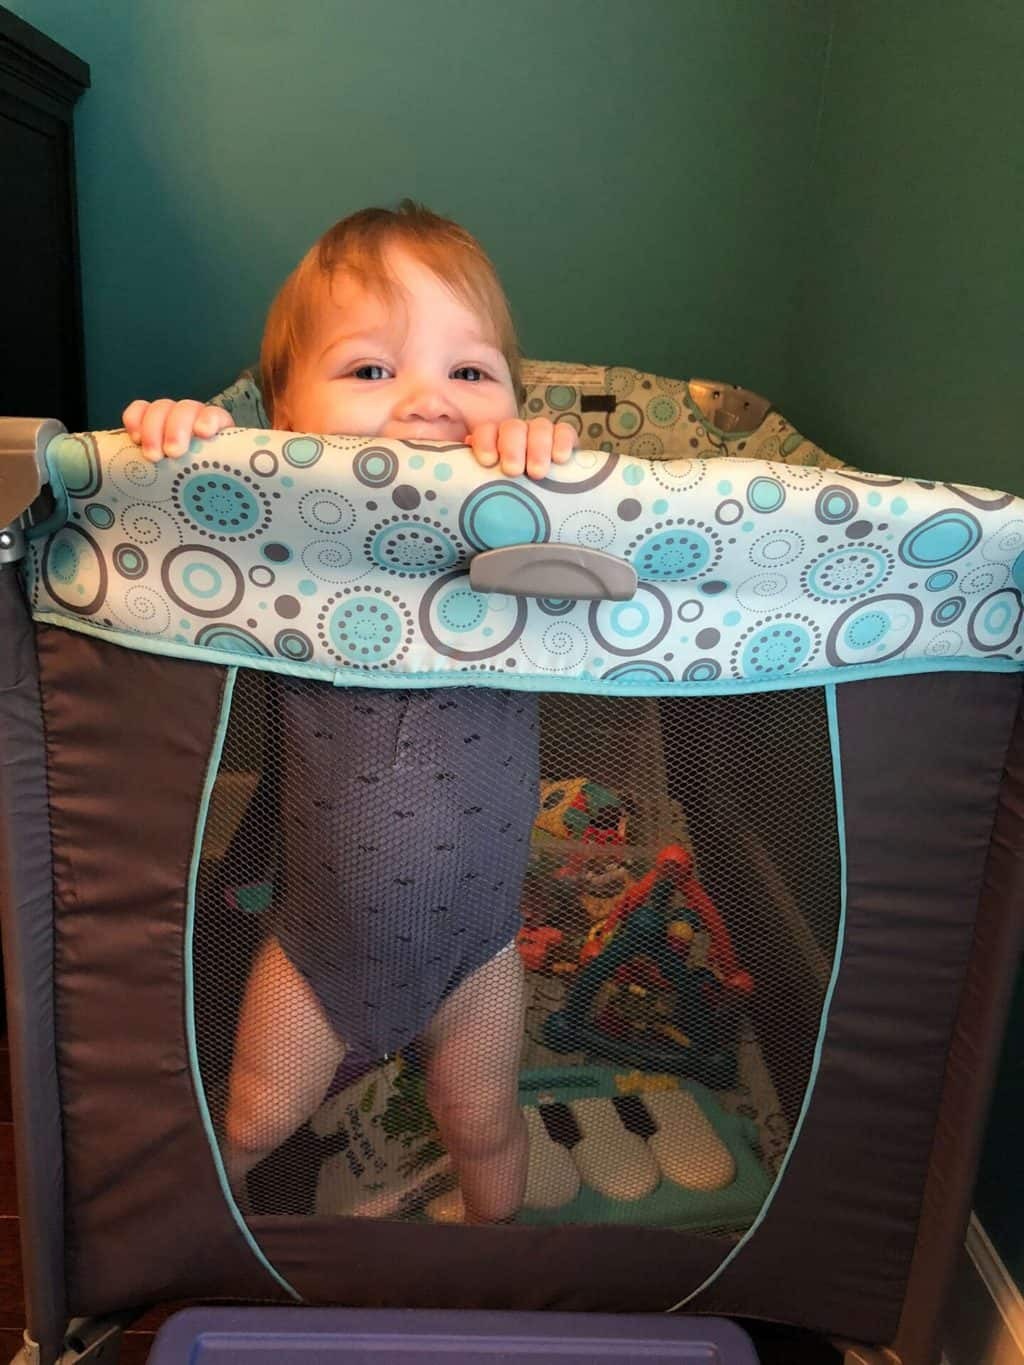 The Best Toys to Encourage Independent Play